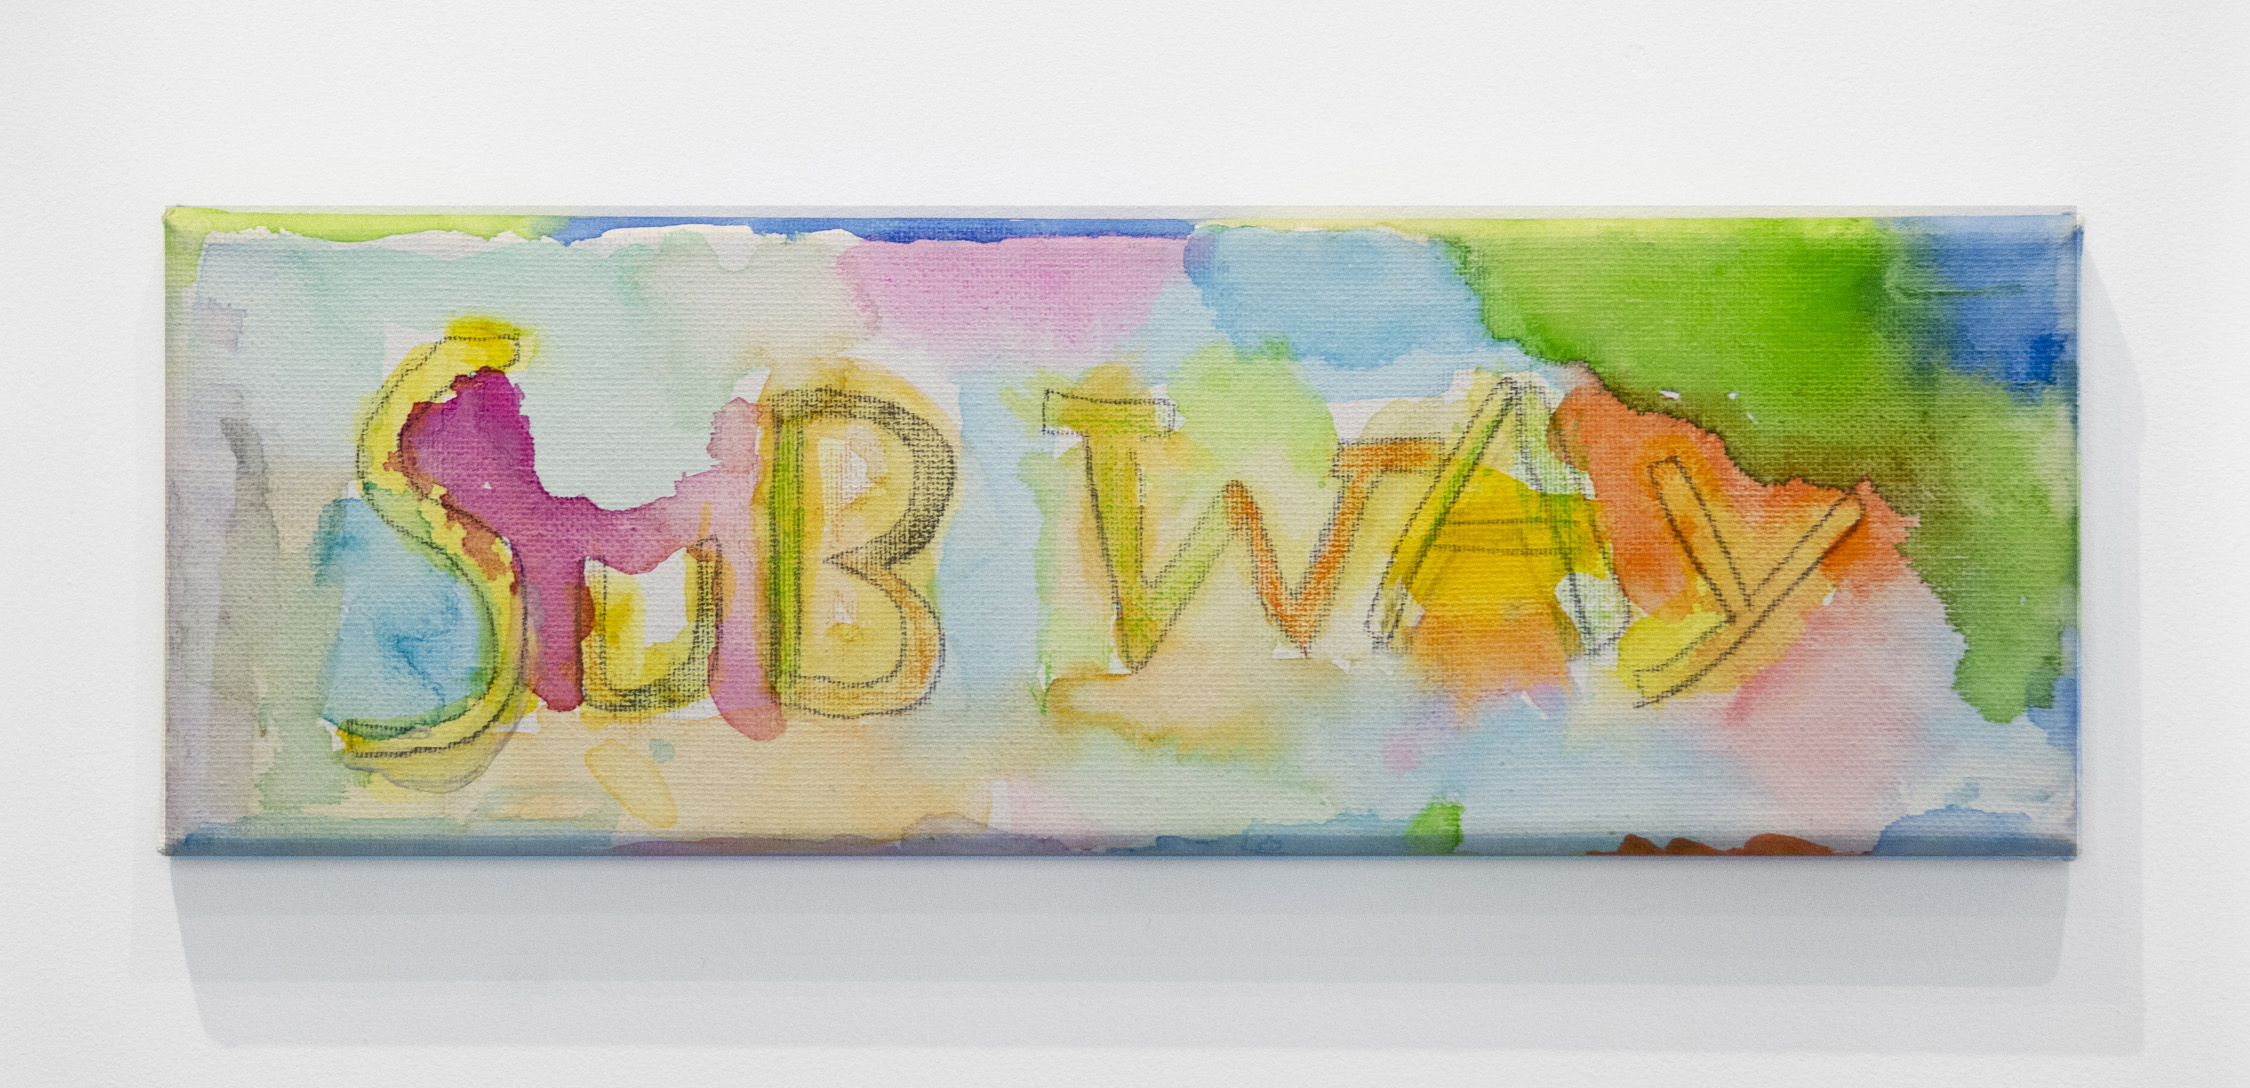 Hudson DeNike Palmer ,   Subway , 2019, Watercolor and pencil on canvas, 4 x 12 inches (10.16 x 30.5 cm)